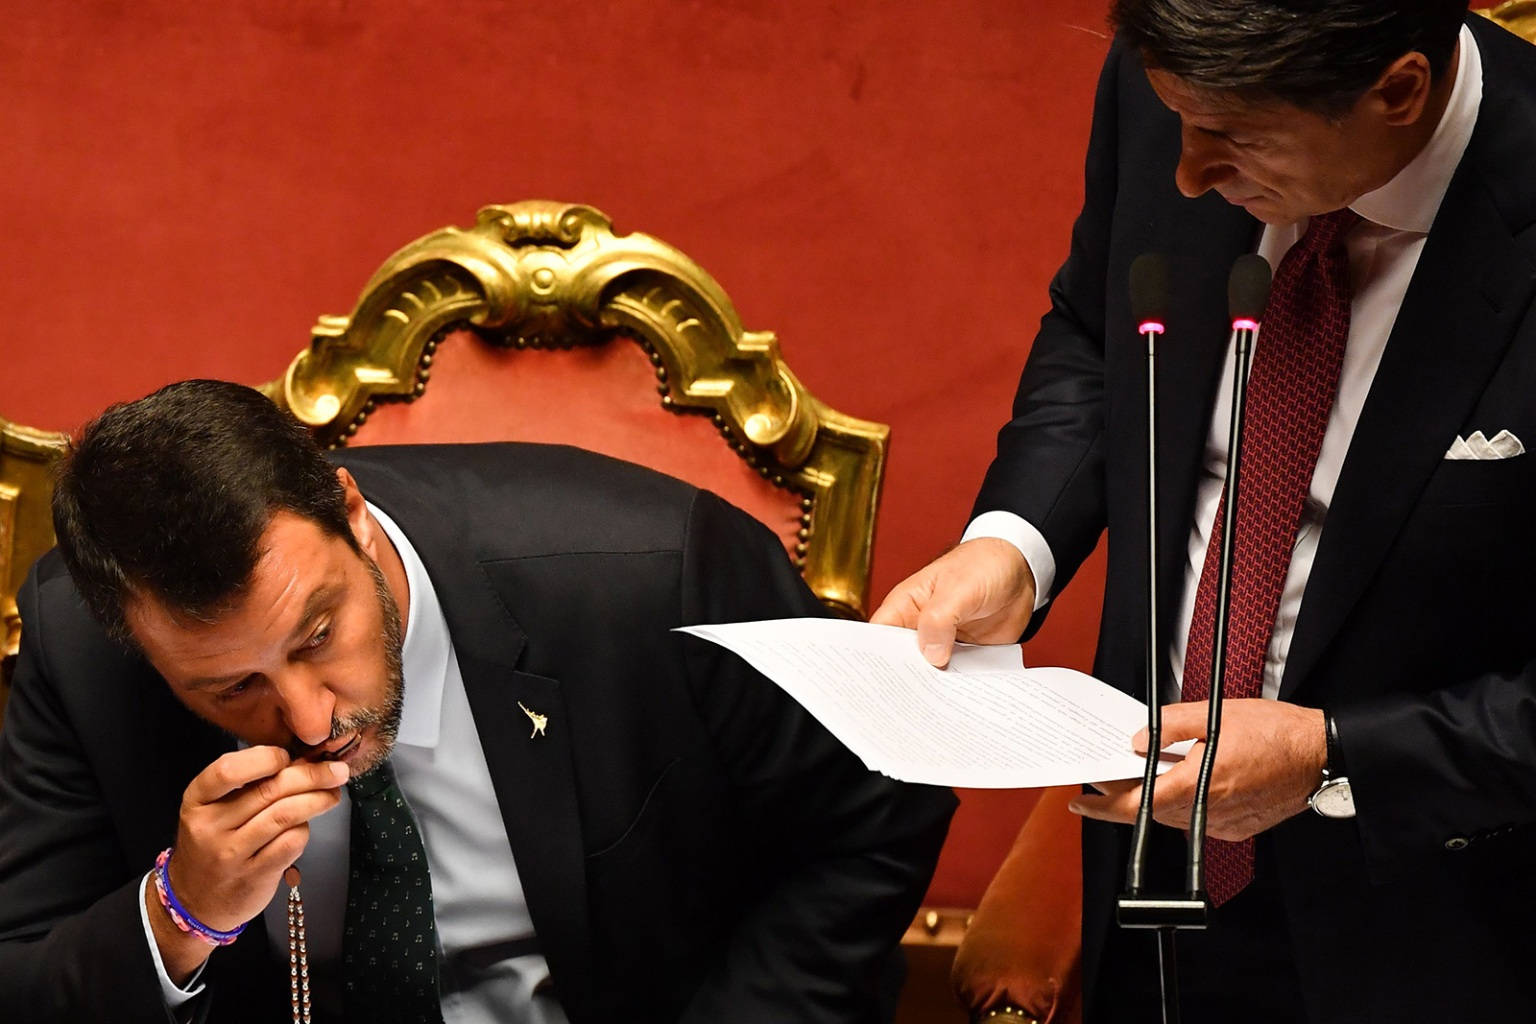 Deputy Prime Minister and Interior Minister Matteo Salvini kisses a rosary as Italian Prime Minister Giuseppe Conte delivers a speech offering his resignation at the Italian Senate in Rome on Aug. 20. ANDREAS SOLARO/AFP/Getty Images